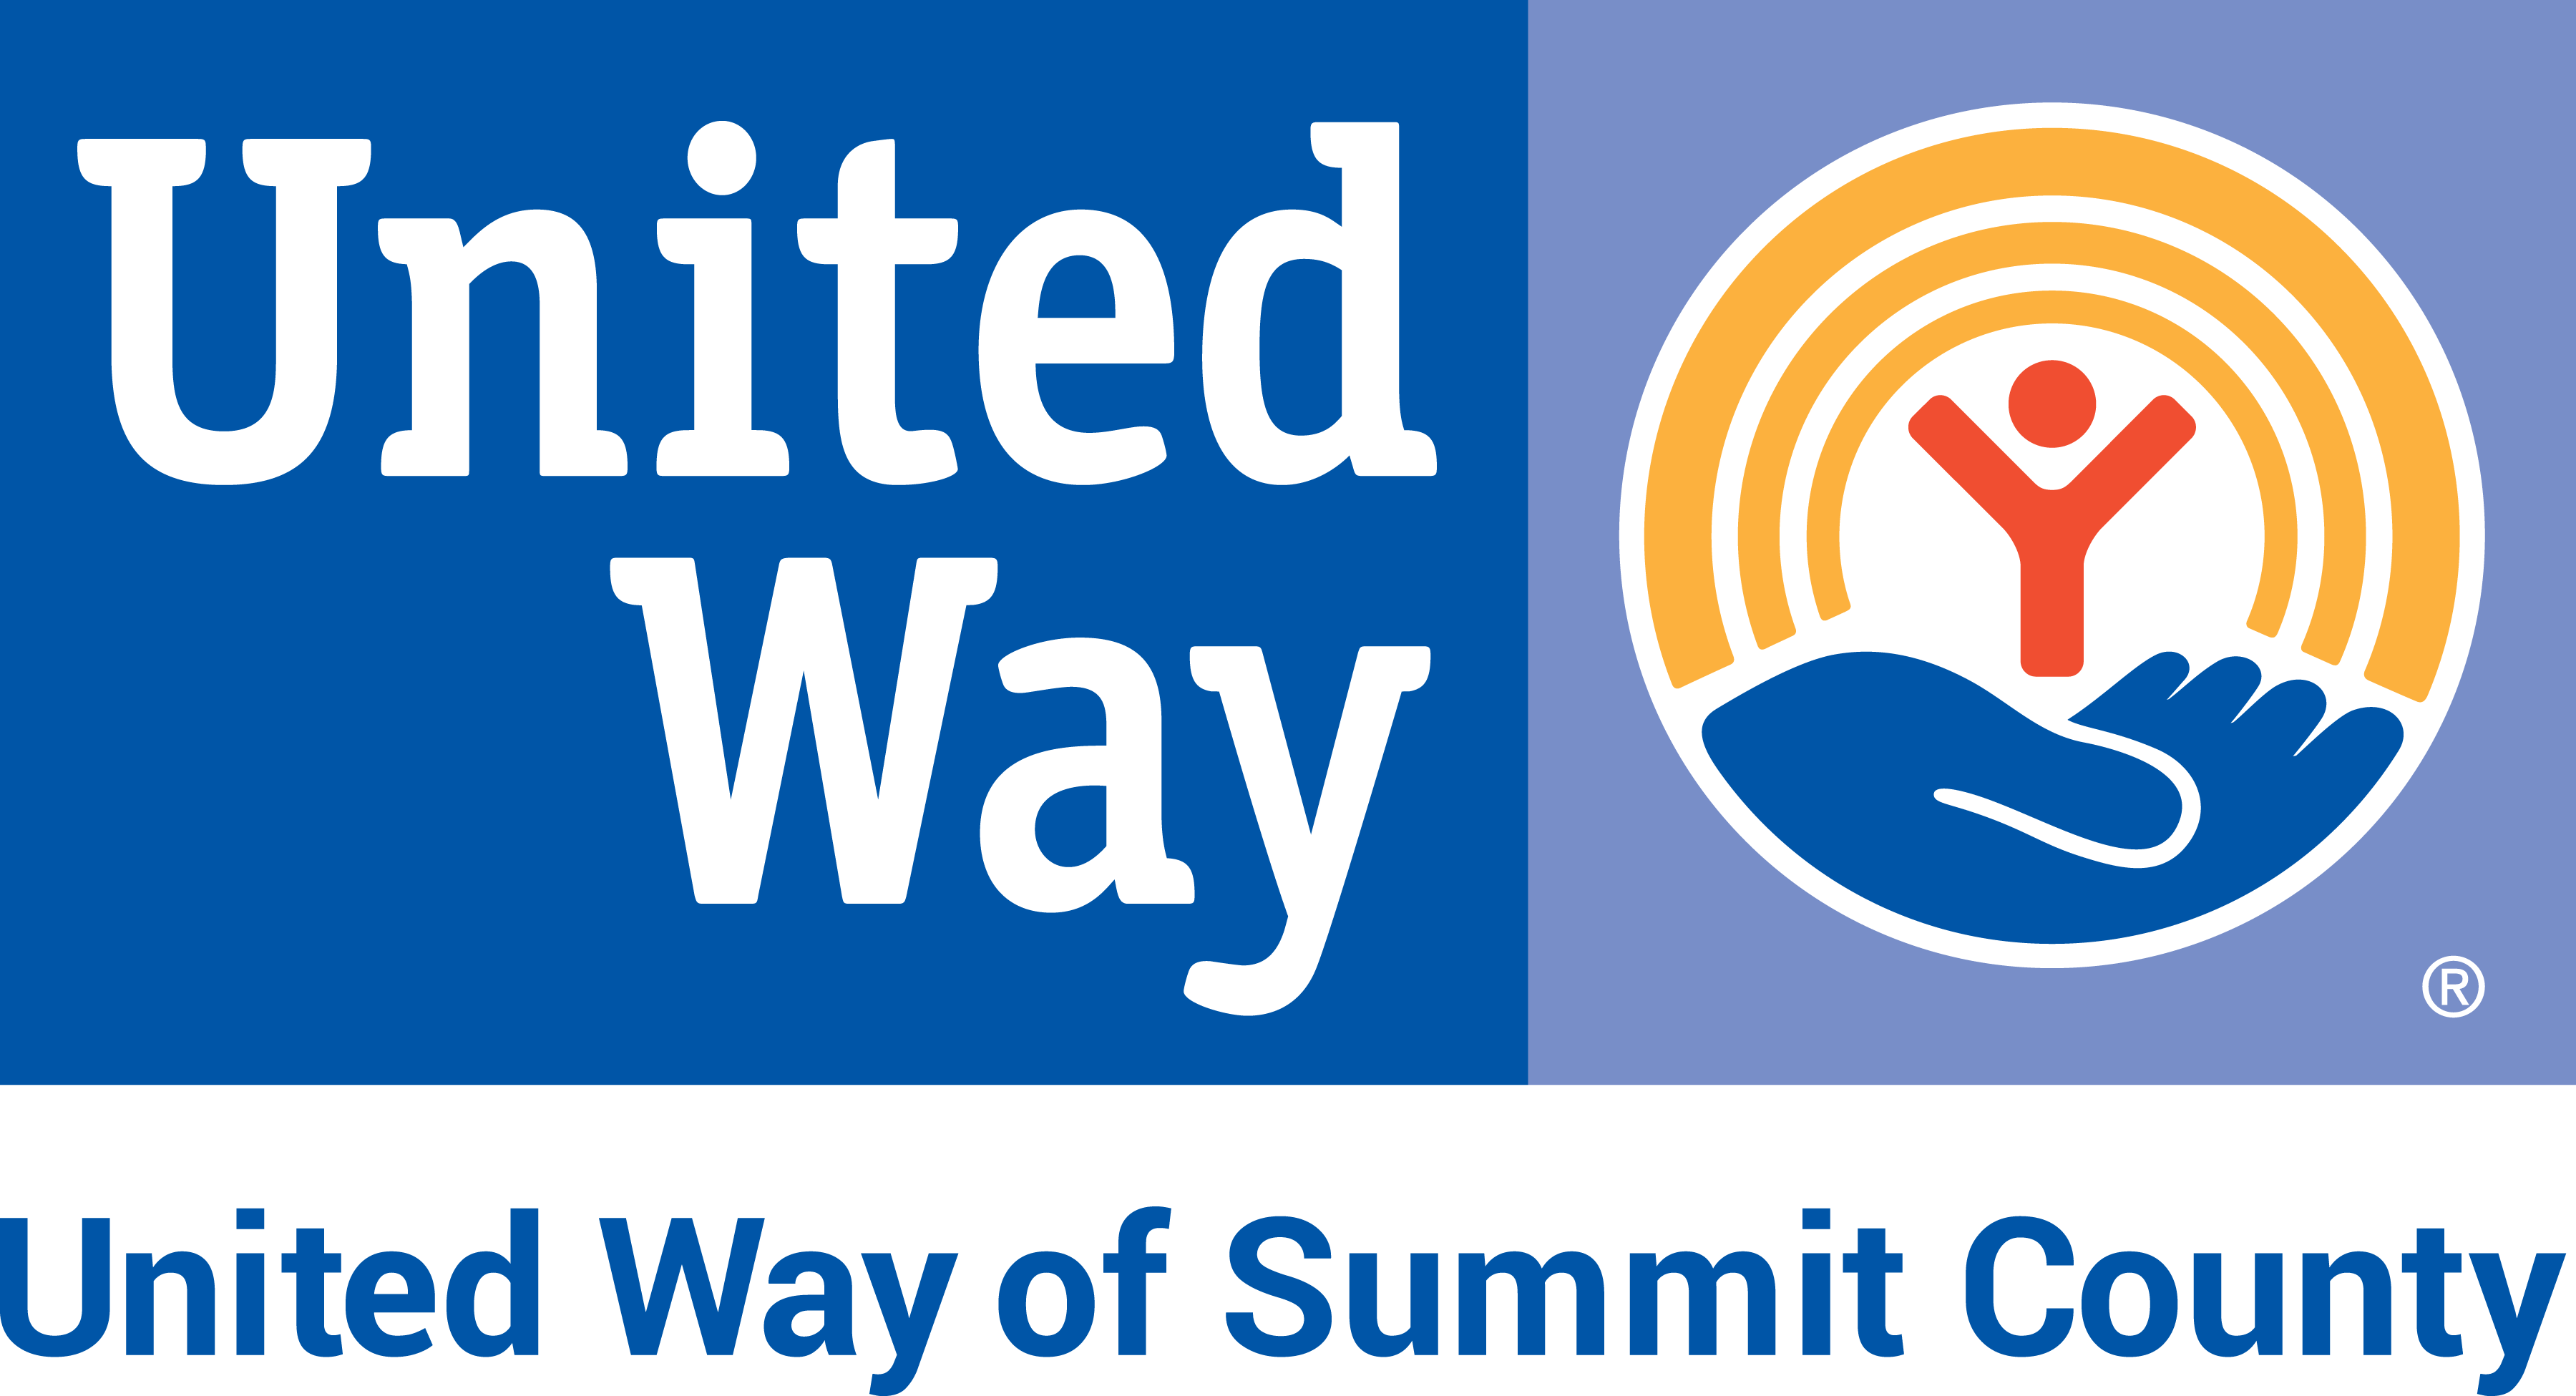 United Way of Summit County